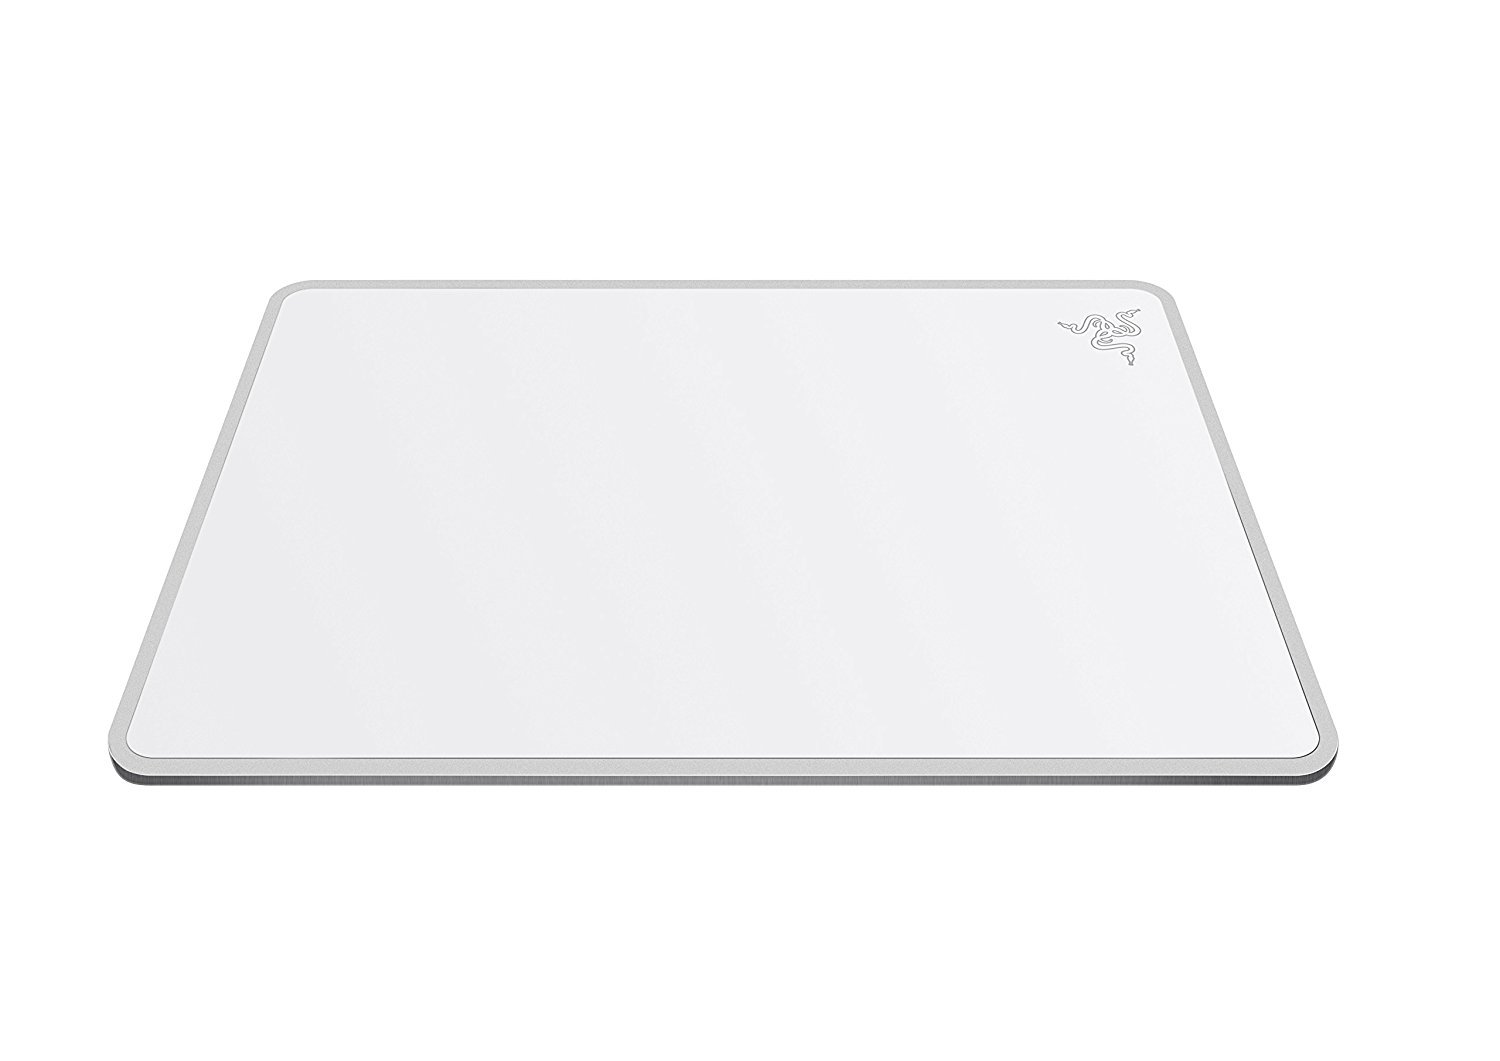 Razer Invicta gaming mousepad: Aircraft-Grade Aluminum Base - Included Double-Sided Mat Surface for Personalization - Anti-Slip Rubber Base - Mercury White by Razer